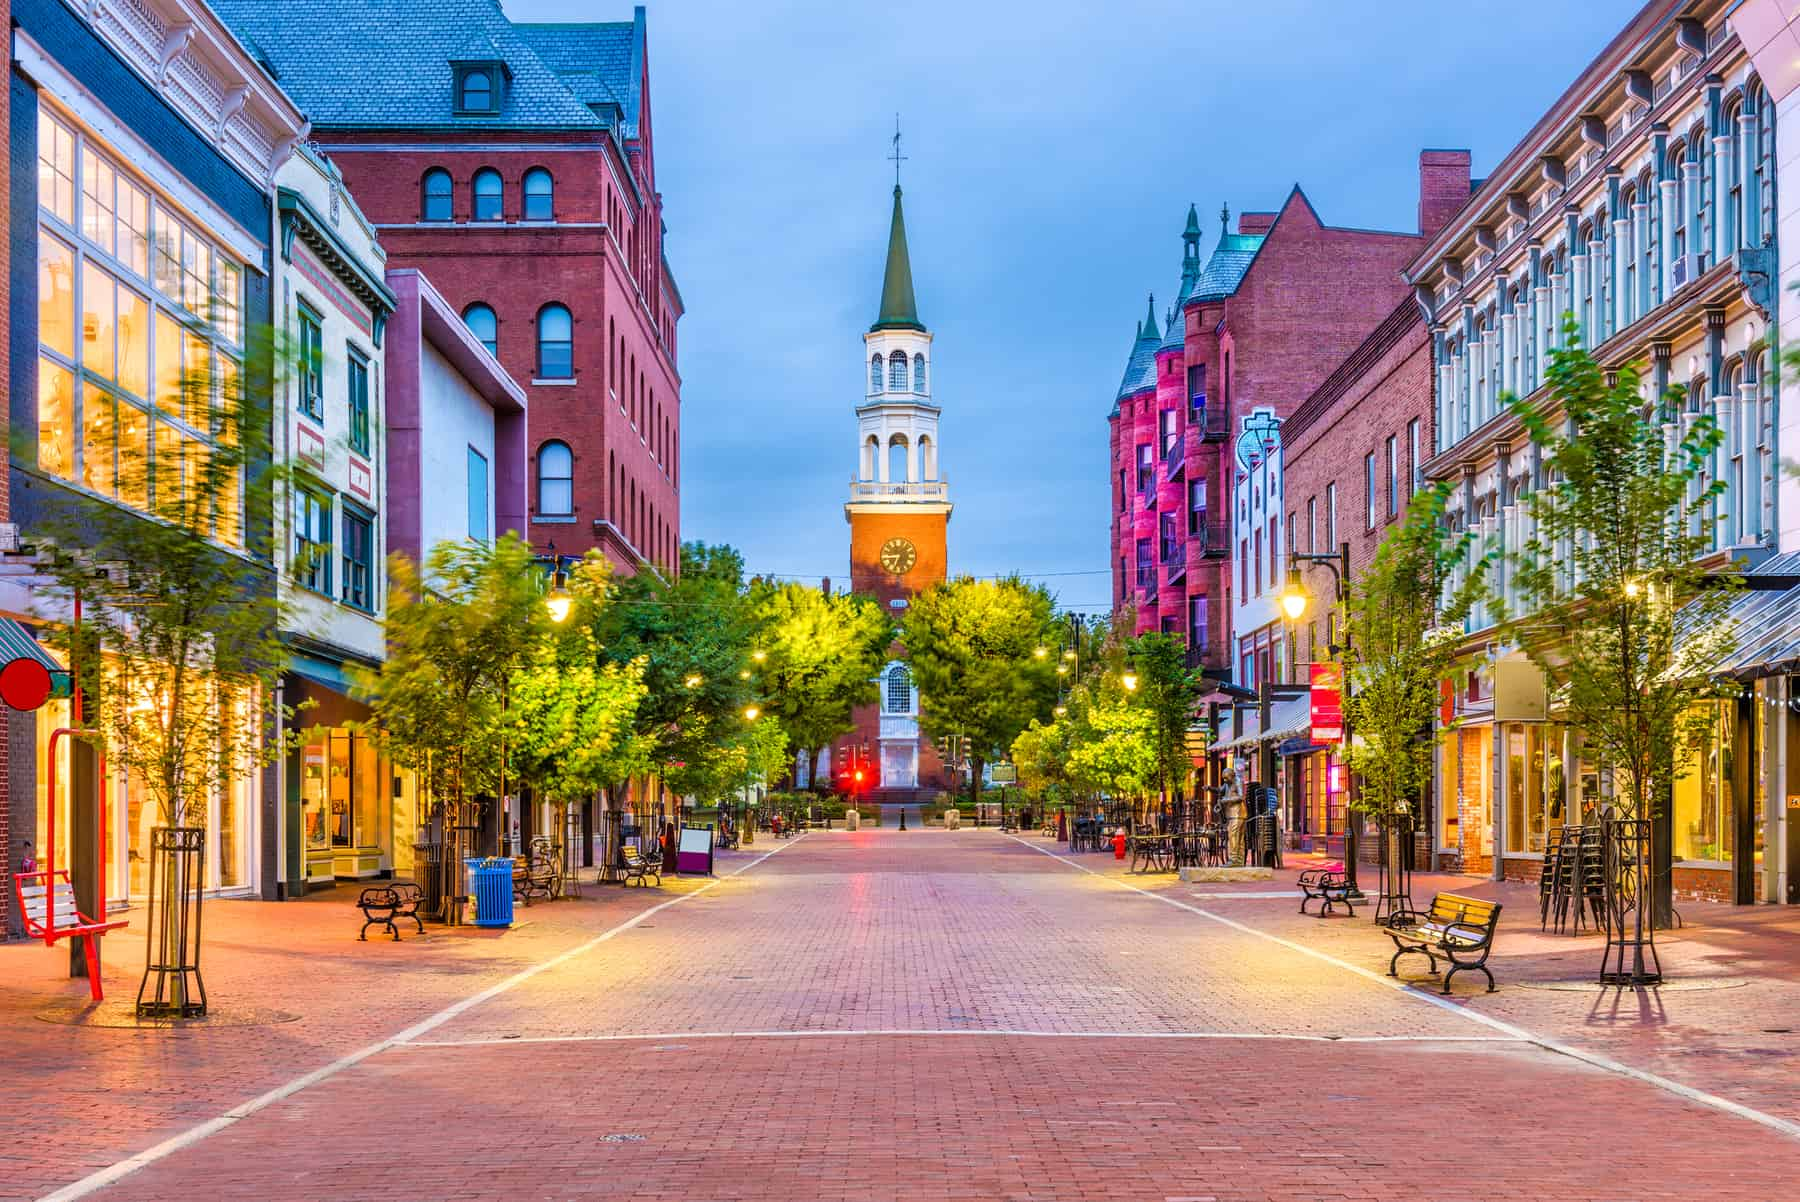 picture of Burlington, Vermont, USA at Church Street Marketplace.